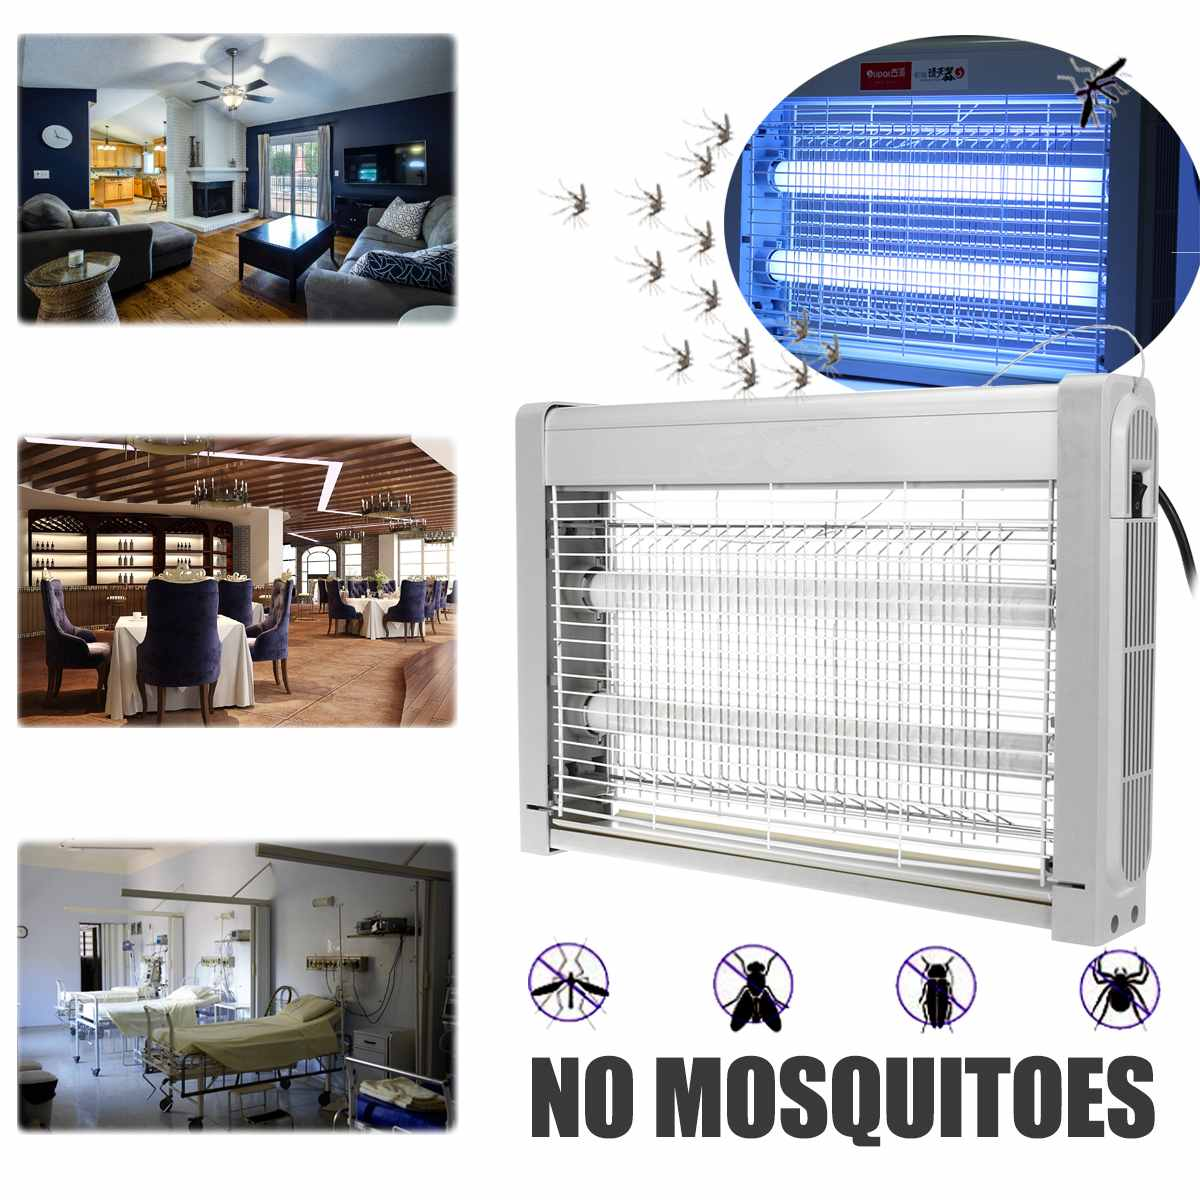 220V Electric Shock Insect Killer Anti Mosquito Killer Trap Light Home Room Garden Fly Wasp Bug Insect Zapper Trap Catcher Lamp220V Electric Shock Insect Killer Anti Mosquito Killer Trap Light Home Room Garden Fly Wasp Bug Insect Zapper Trap Catcher Lamp